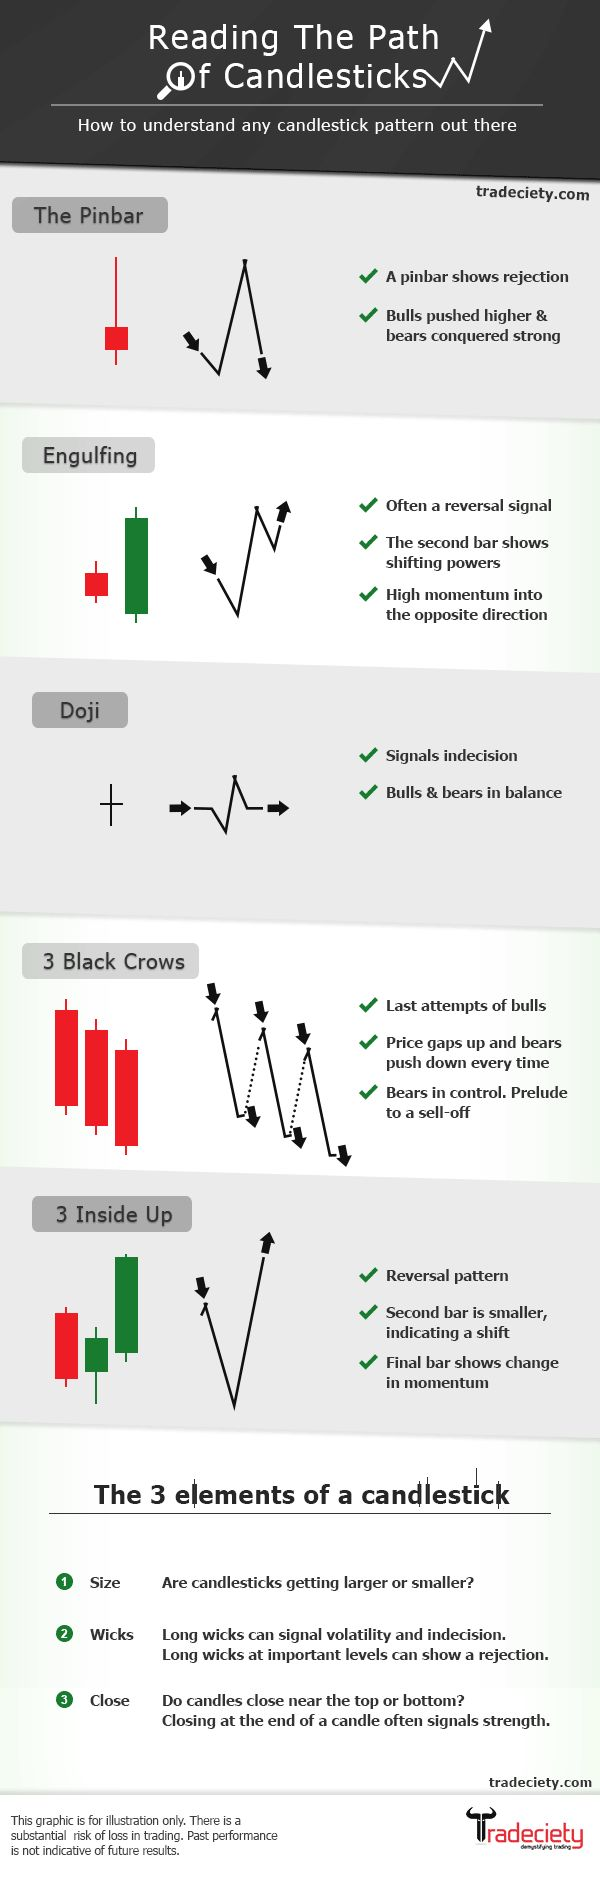 Reading The Path Of Candlesticks: http://www.tradeciety.com/trading-tips-candlestick-patterns #forex #candlesticks